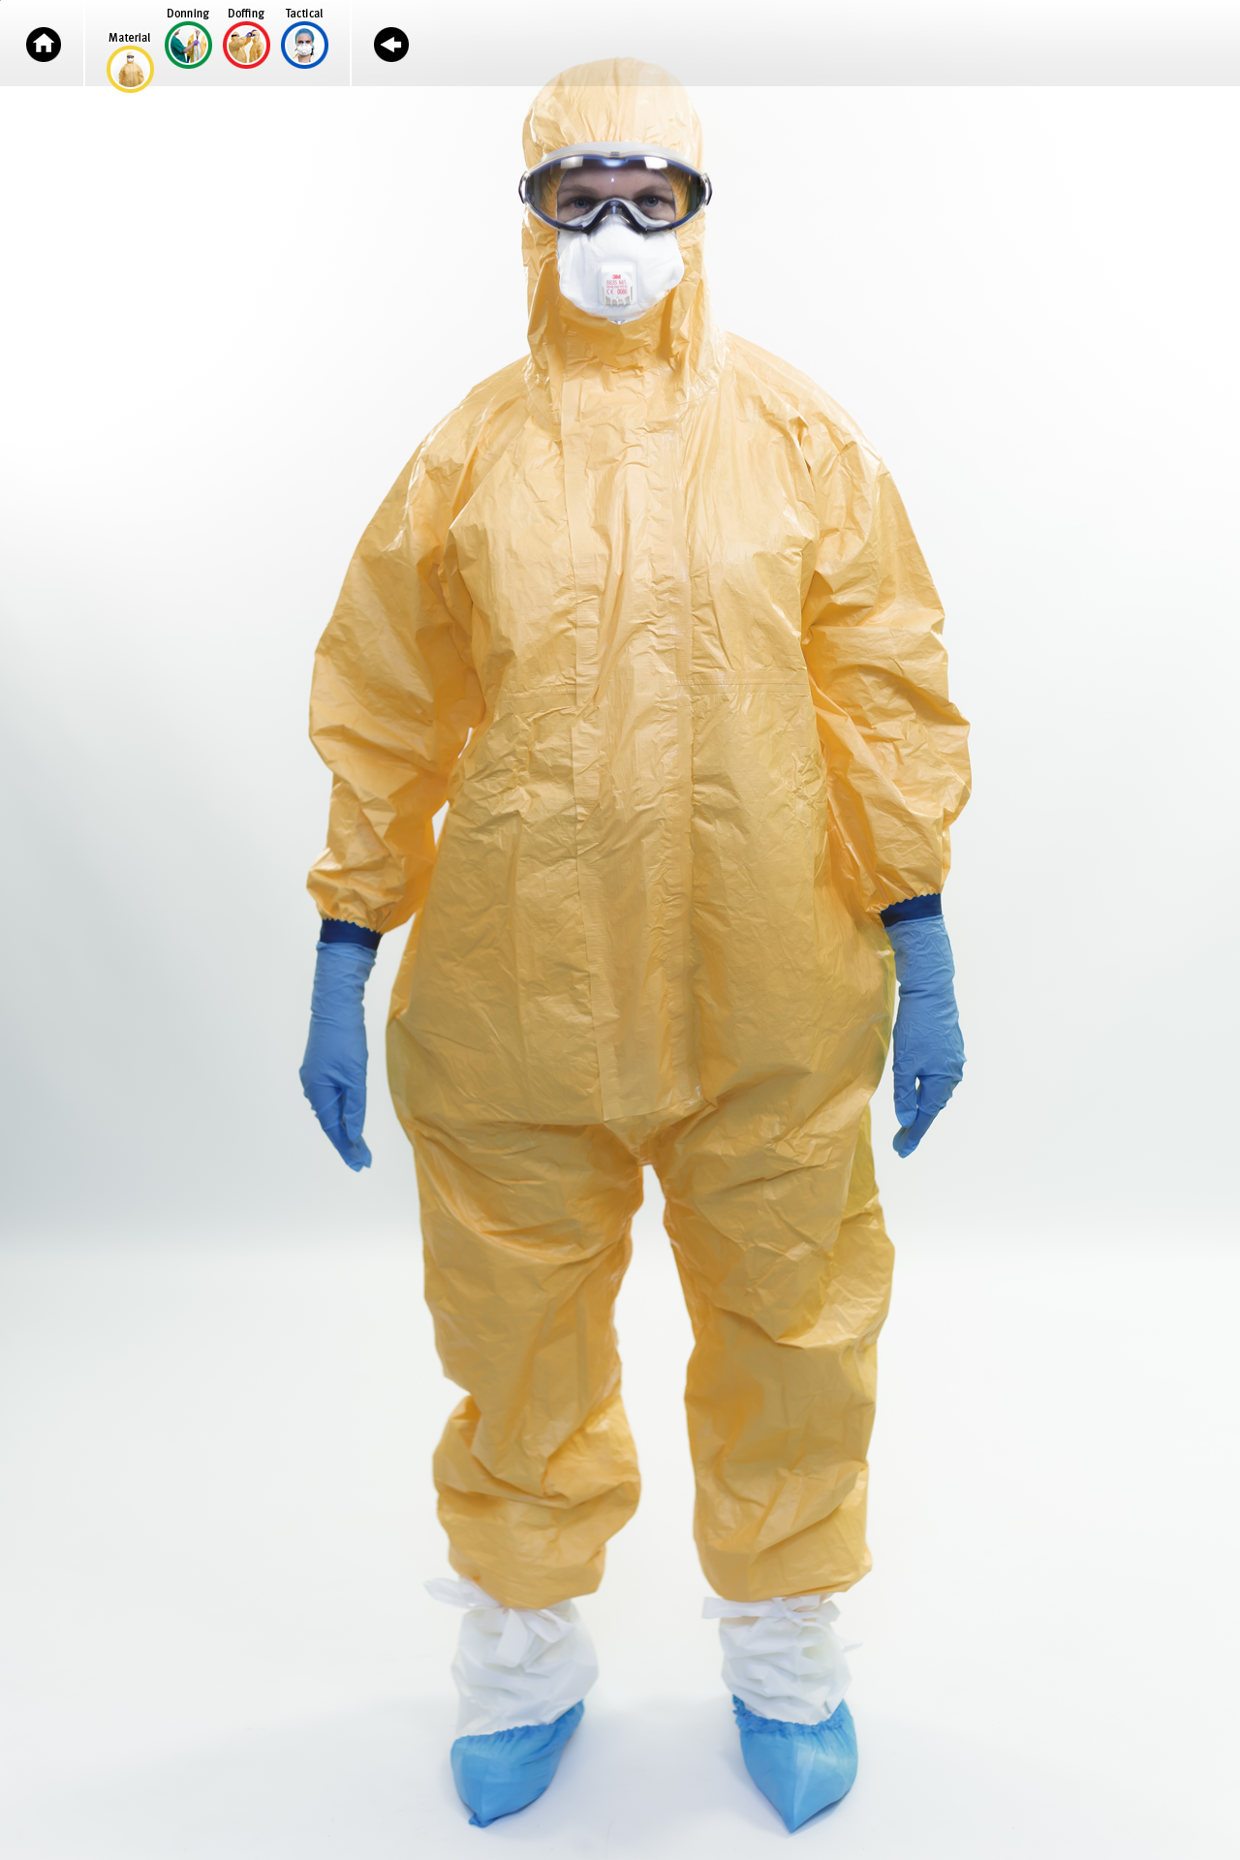 Visuals from ECDC tutorial on the safe use of PPE: MATERIALS